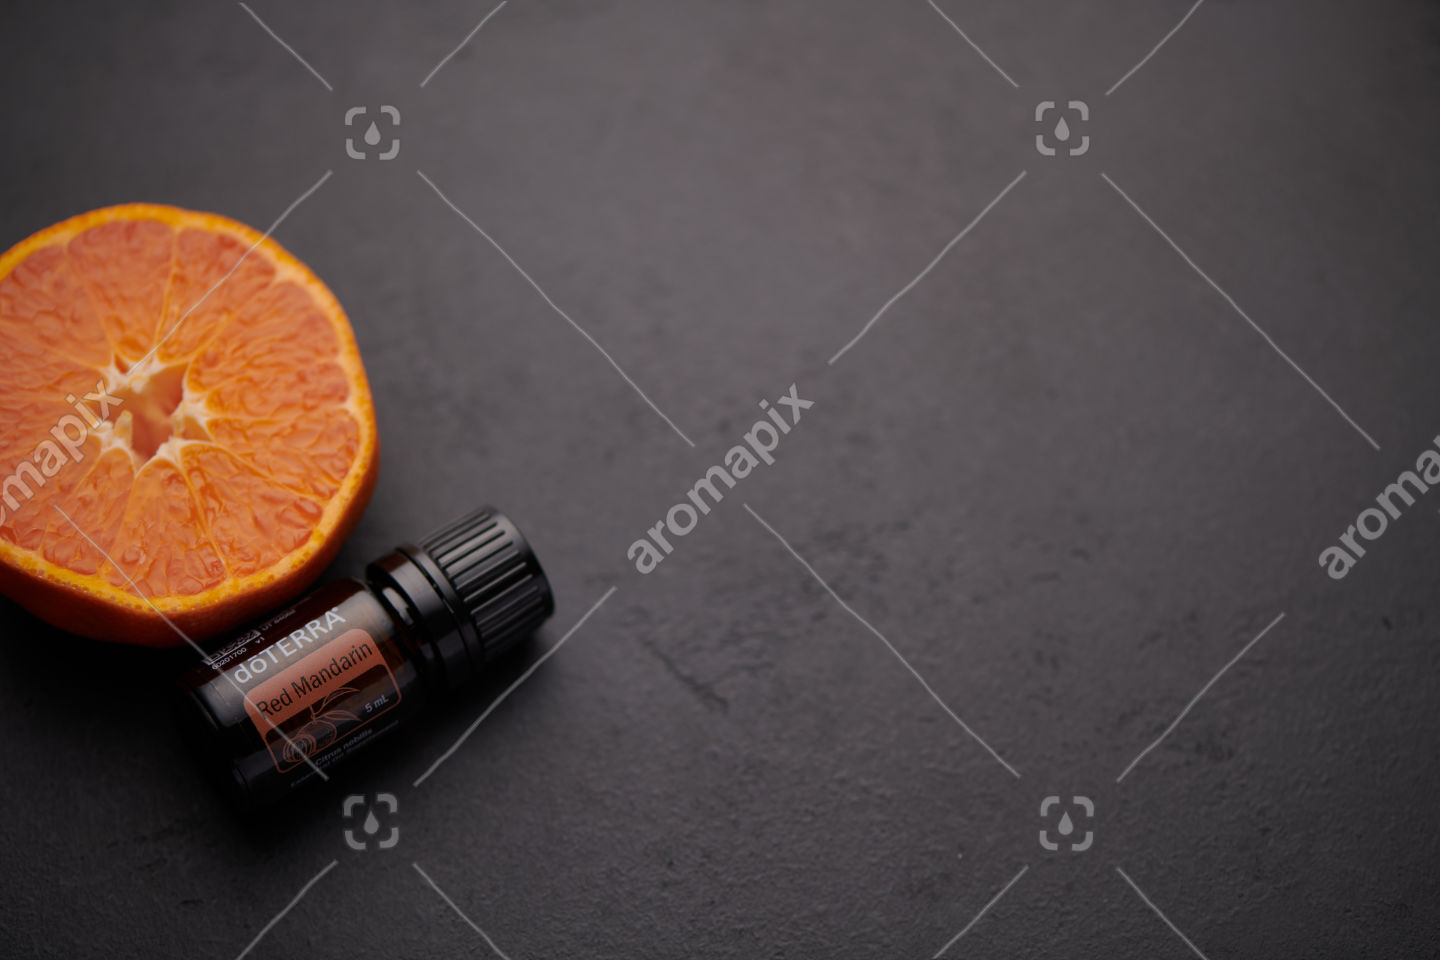 doTERRA Red Mandarin product and mandarin fruit on black background